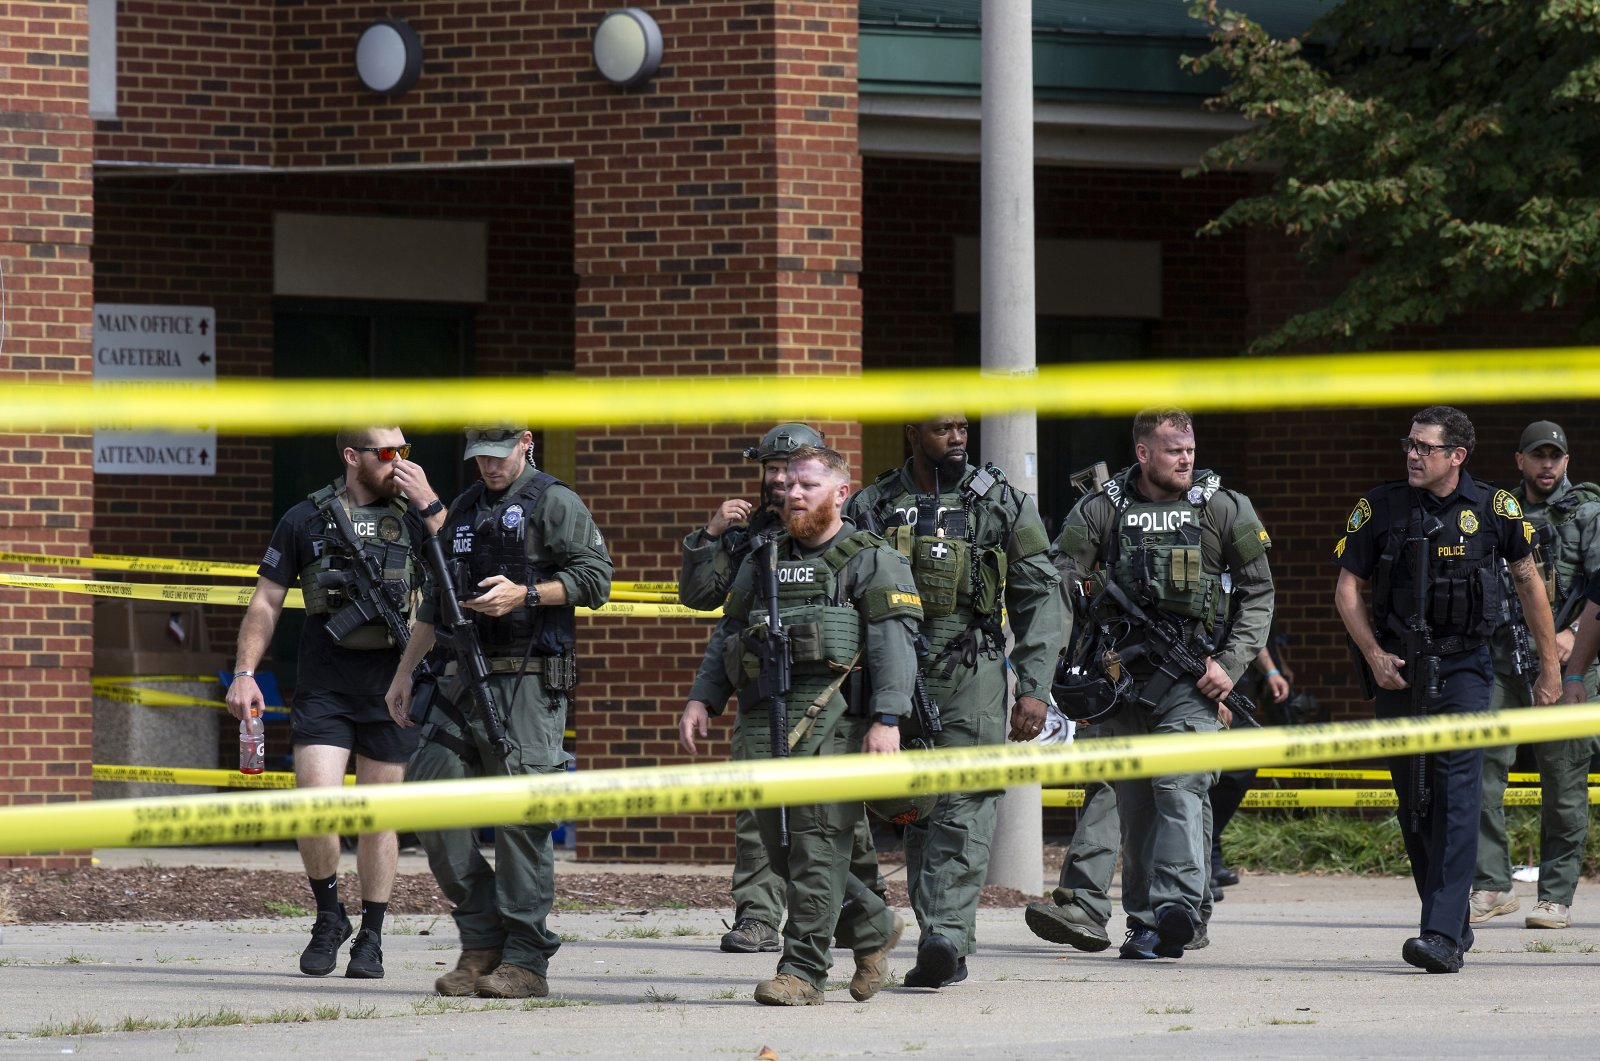 Law enforcement officers exit Heritage High School while responding to a shooting, in Newport News, Virginia, Sept. 20, 2021. (The Virginian-Pilot via AP, File Photo)